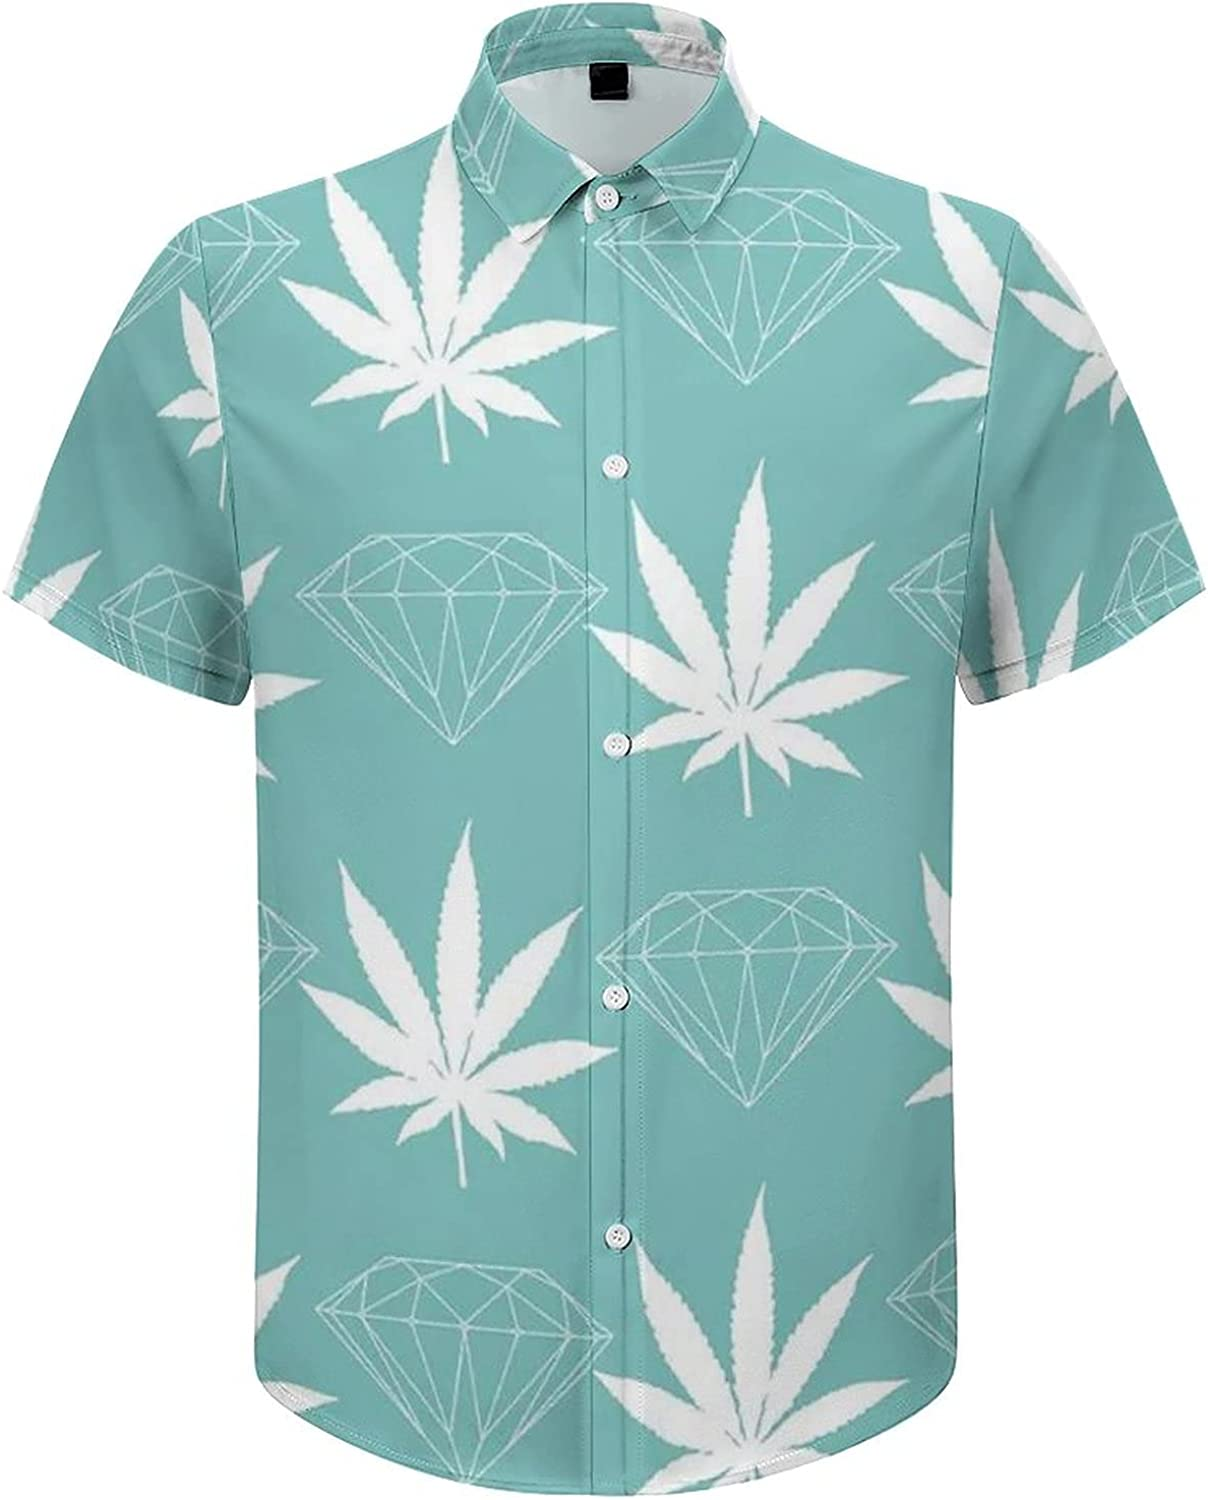 Mens Button Down Shirt Weed Leaves and Jewelry Casual Summer Beach Shirts Tops